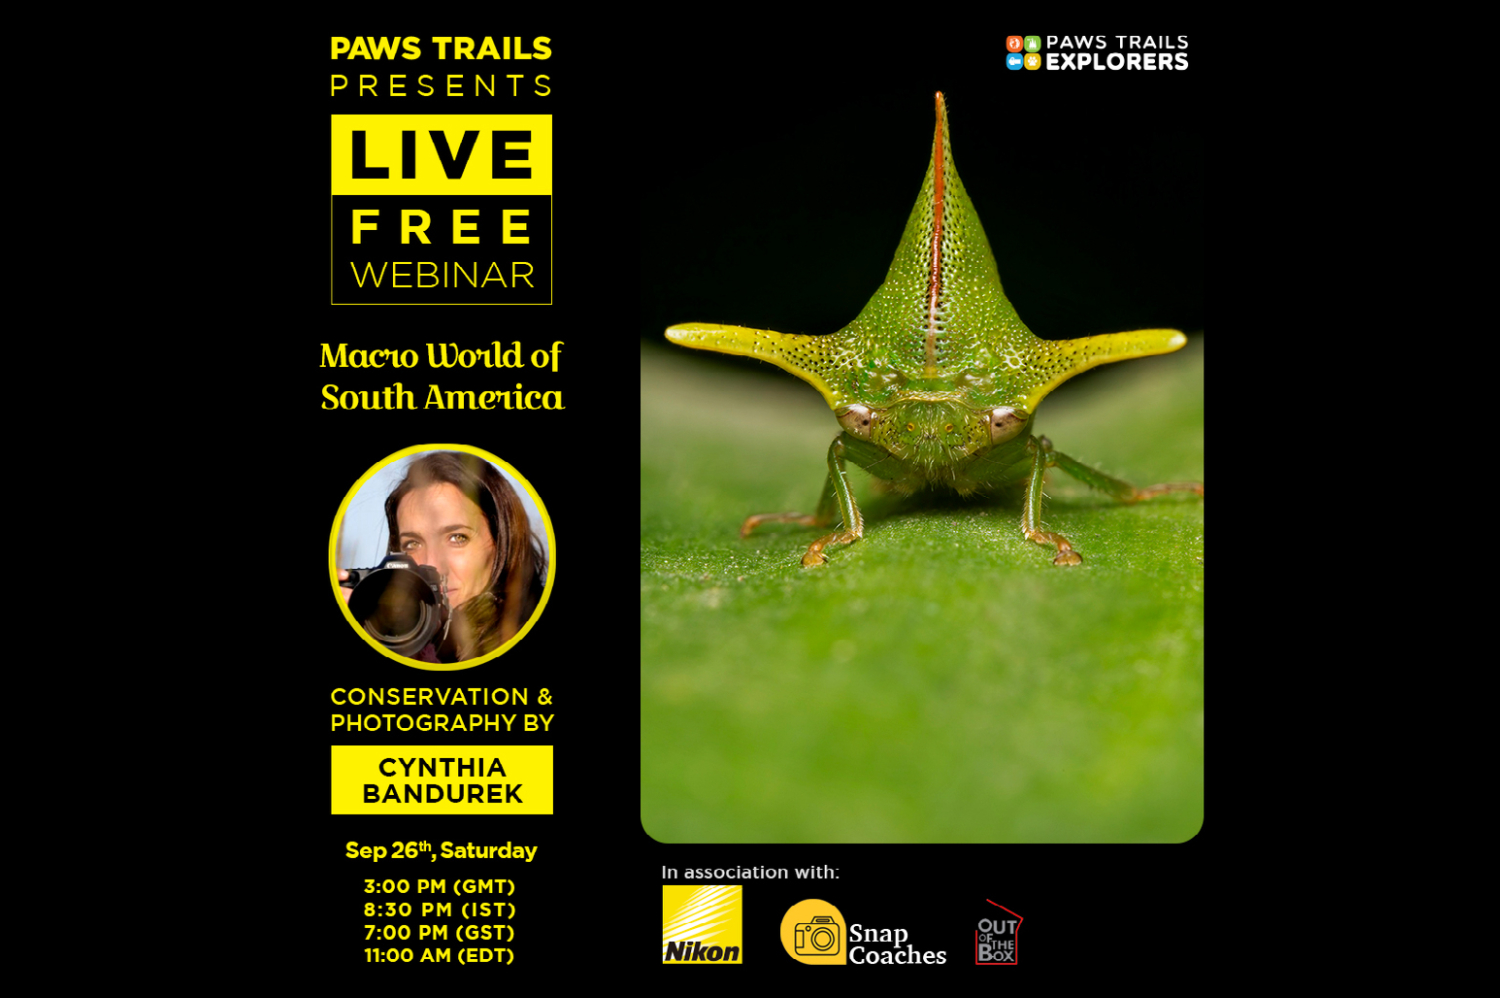 Macroworld – Free Webinar – Paws Trails Explorers